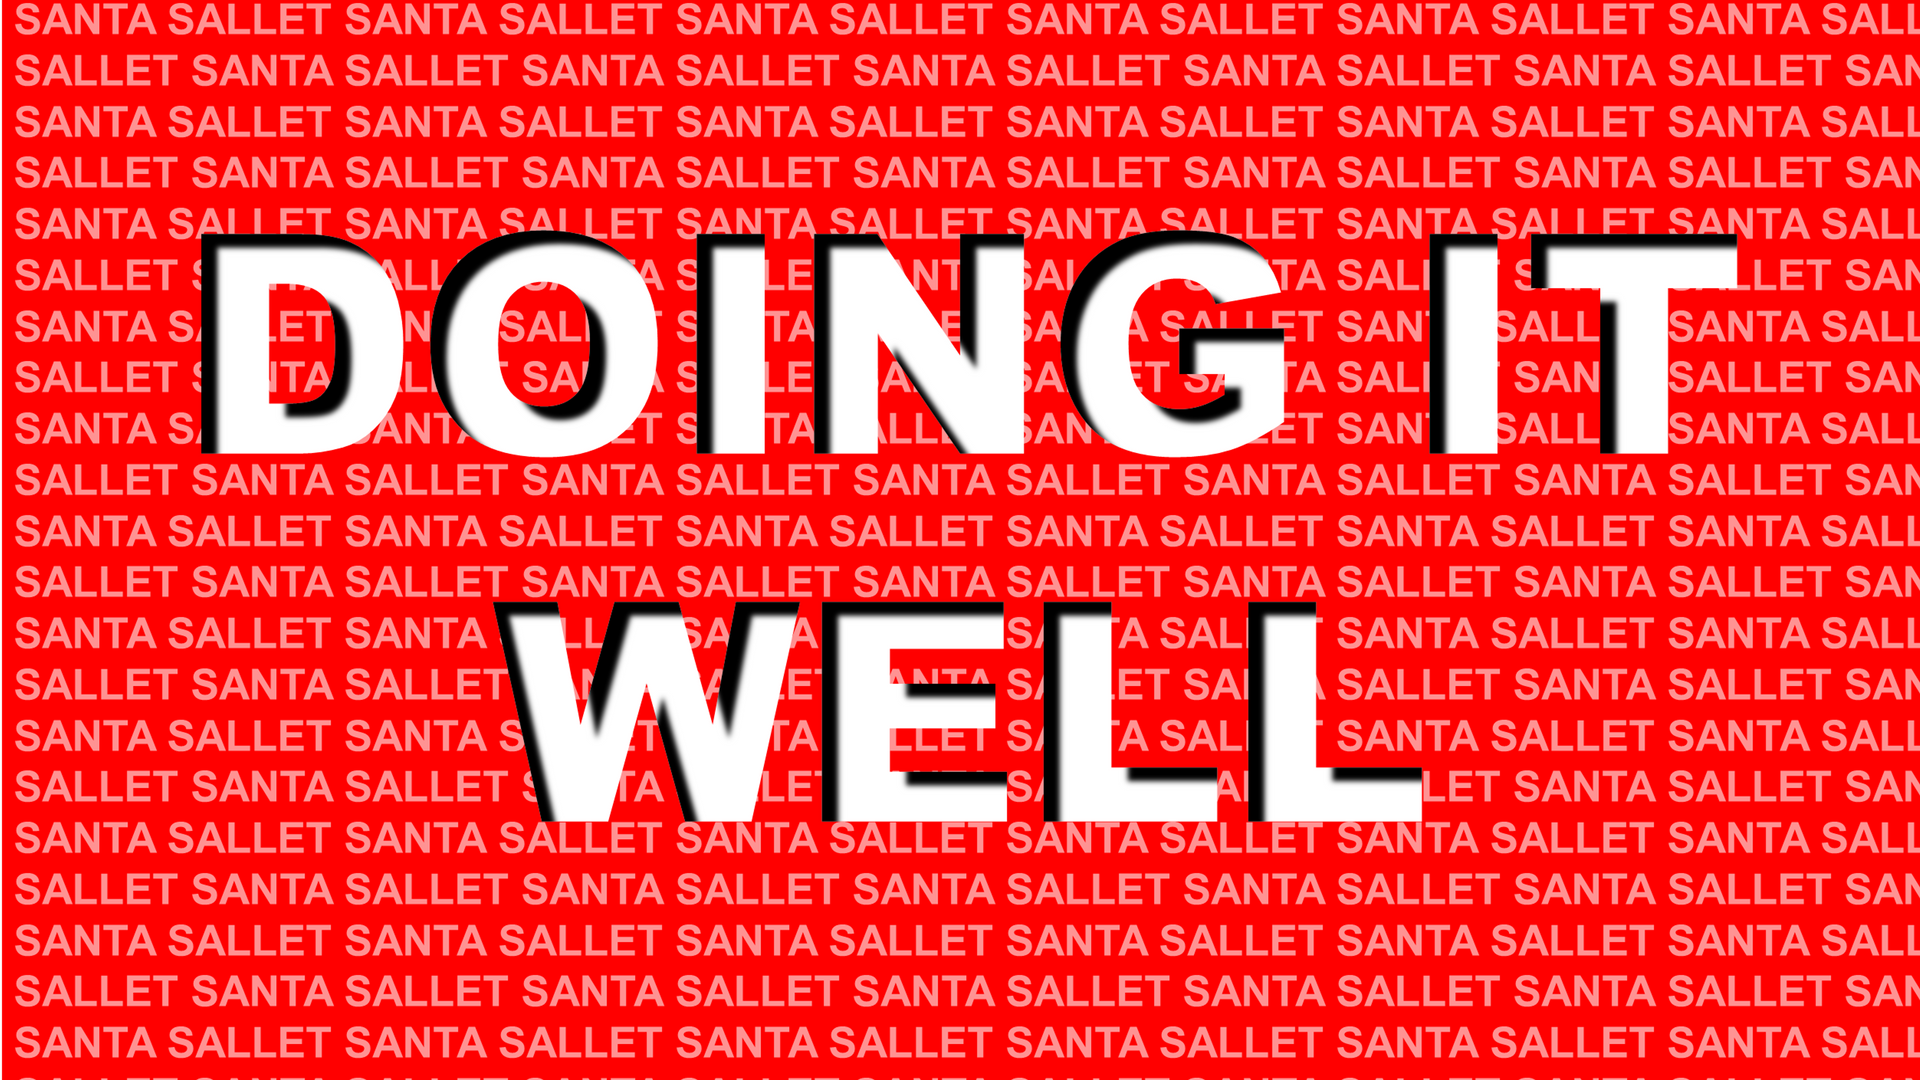 Santa Sallet - Doing it Well Cover ARt.p